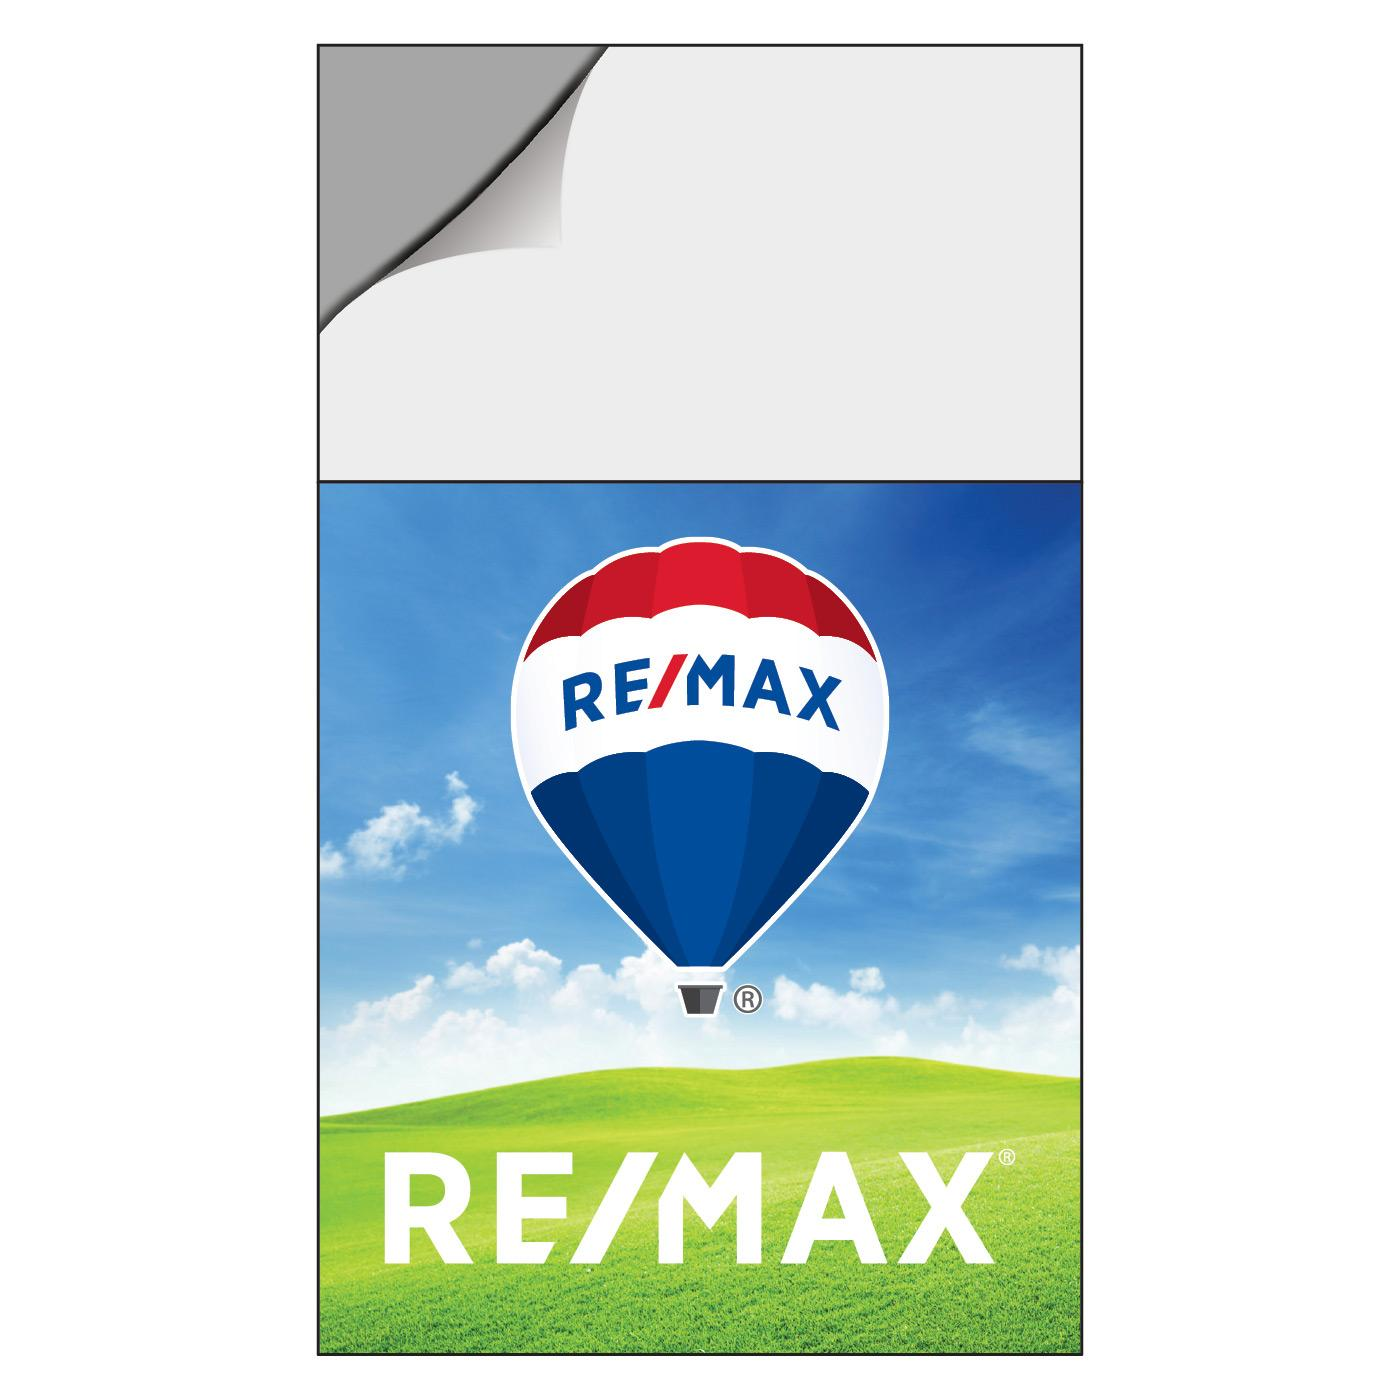 Low-cost RE/MAX marketing calendar